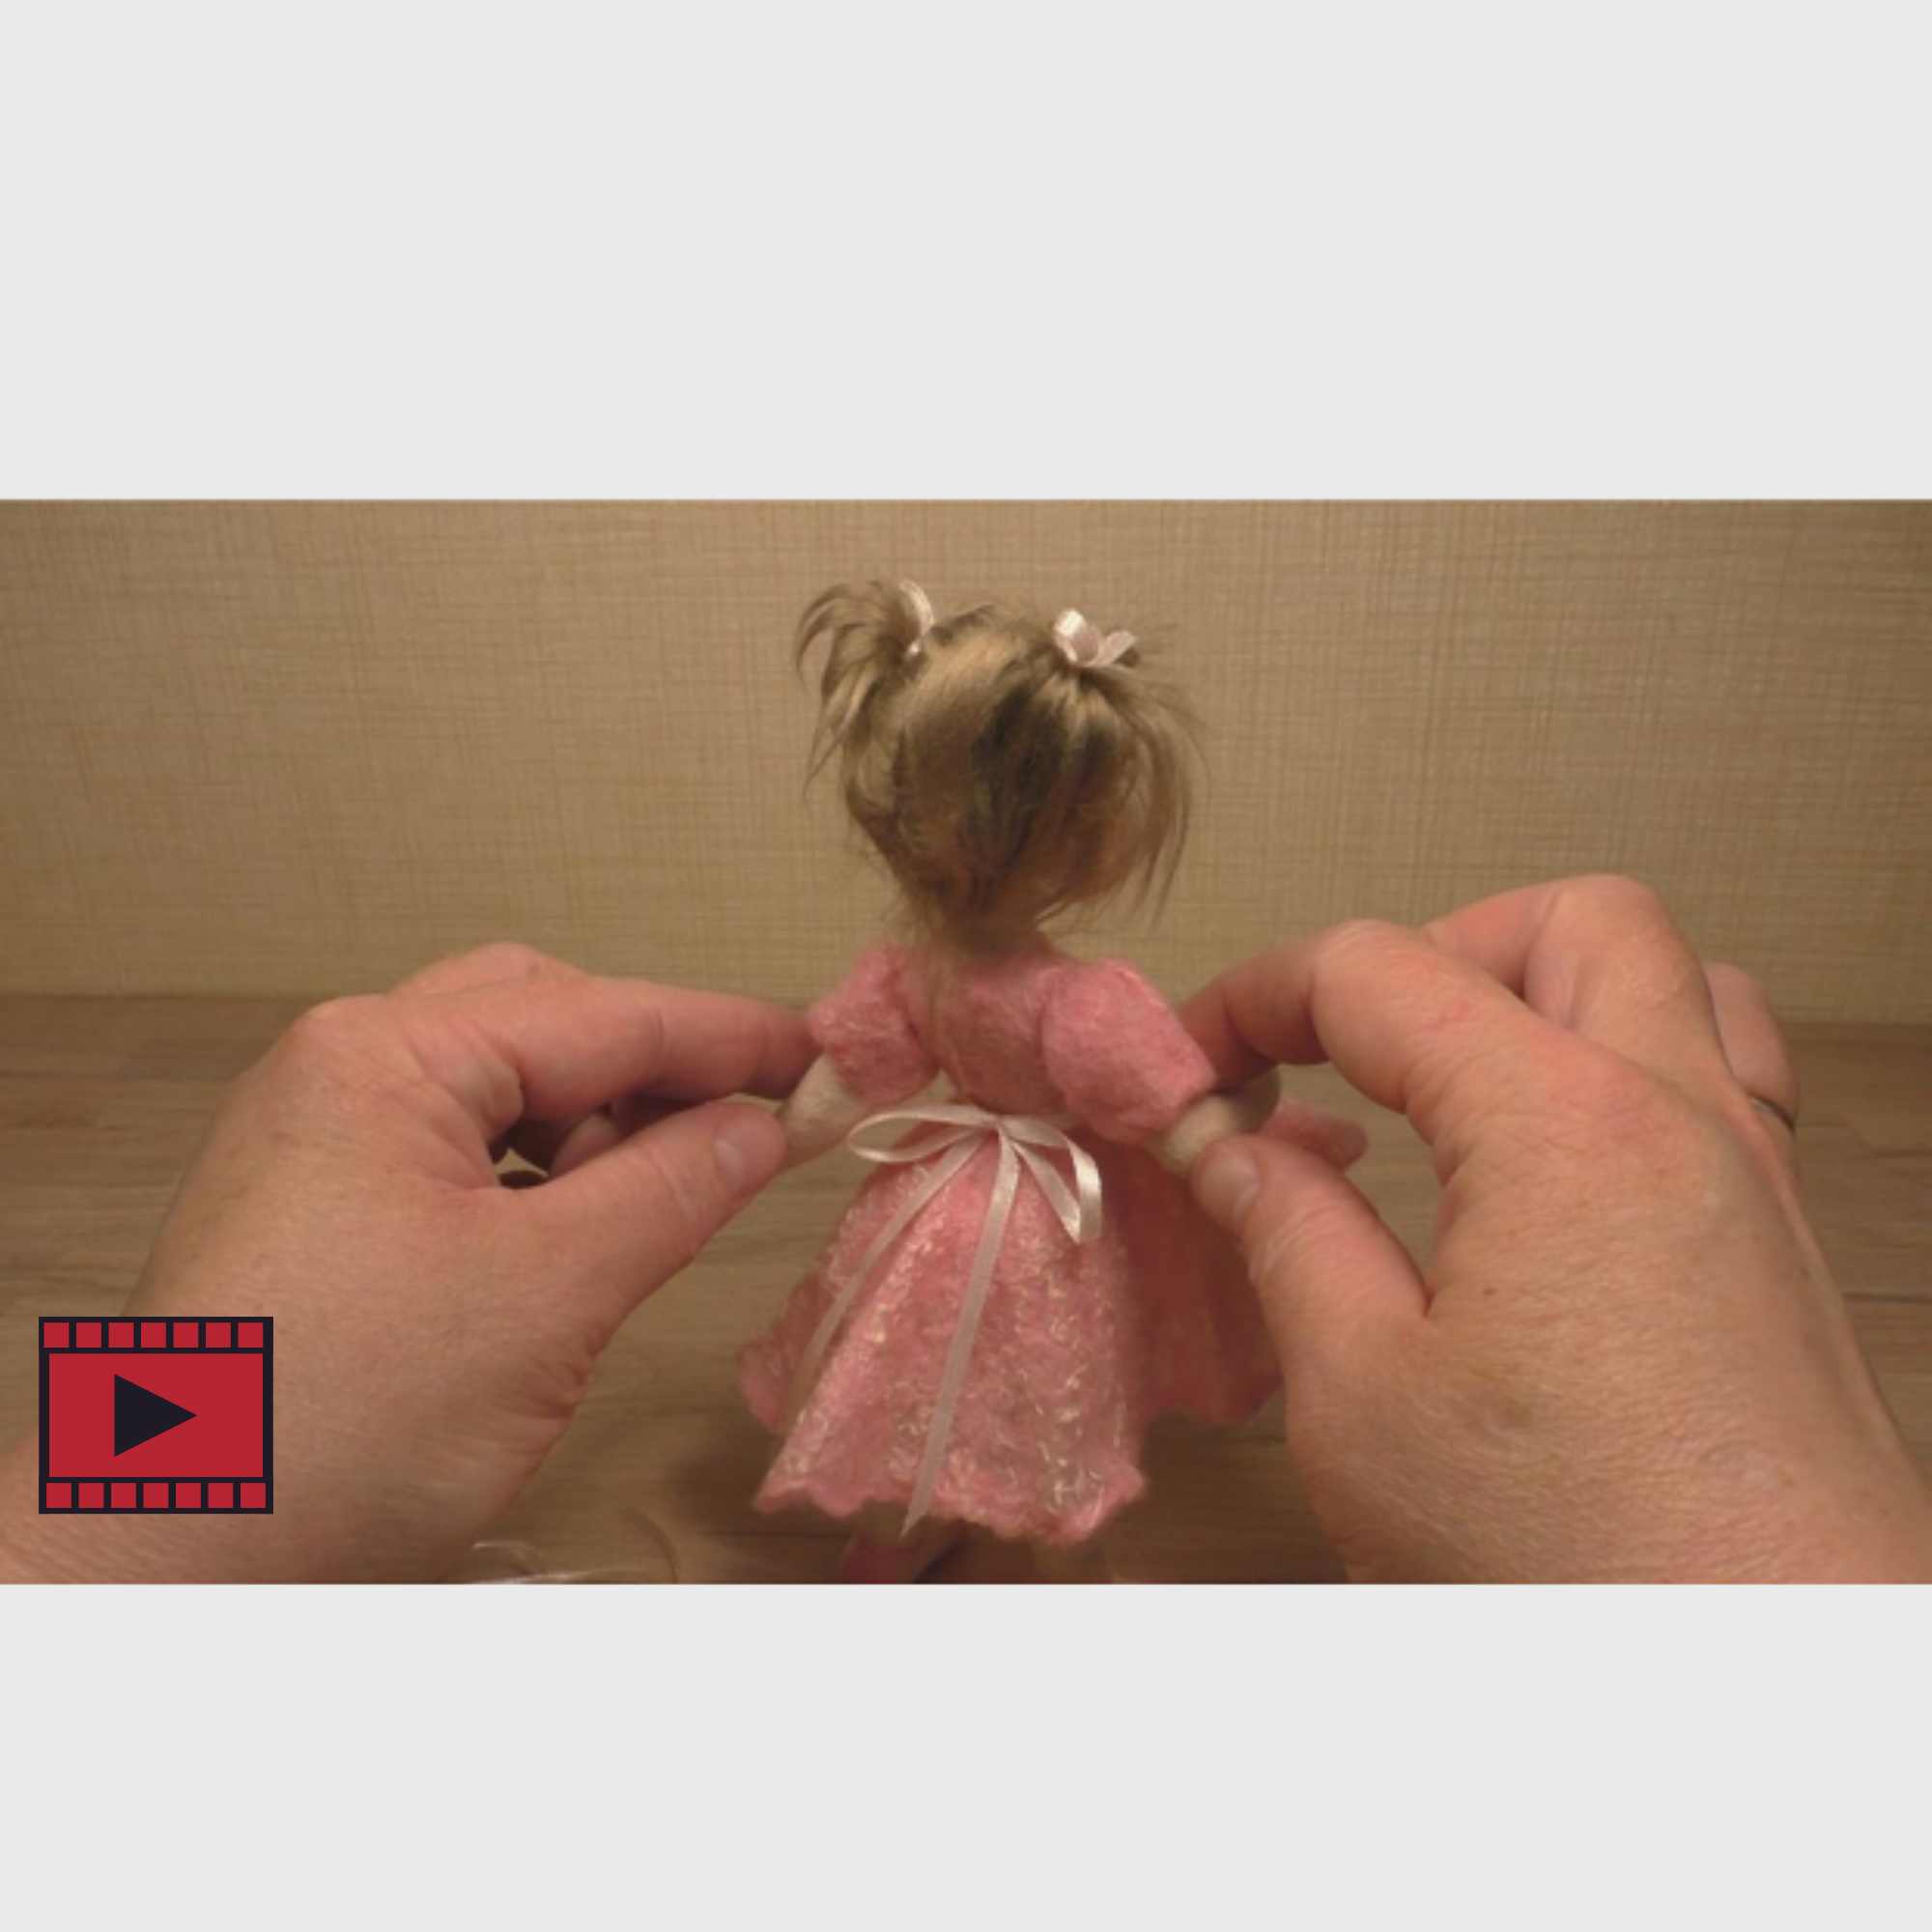 Masterclass Online Felting Workshop by Anna Potapova - 'Hope' ballerina doll - kit with 3 hour online video tutorial - INCUDES *FREE DELIVERY